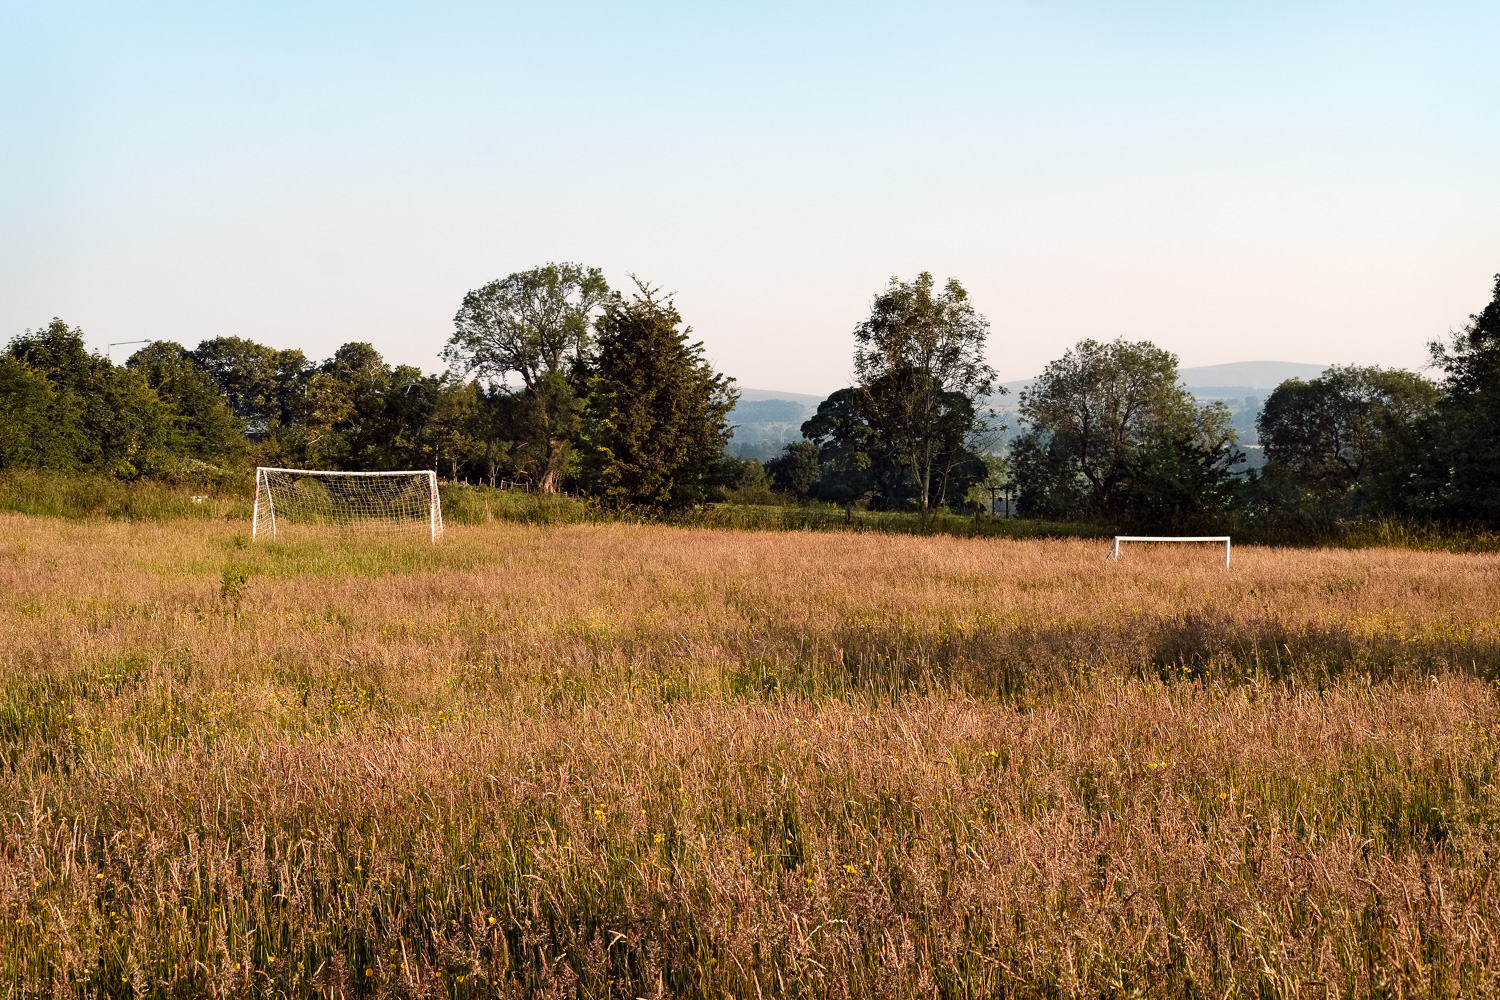 Football pitch, near Burnley